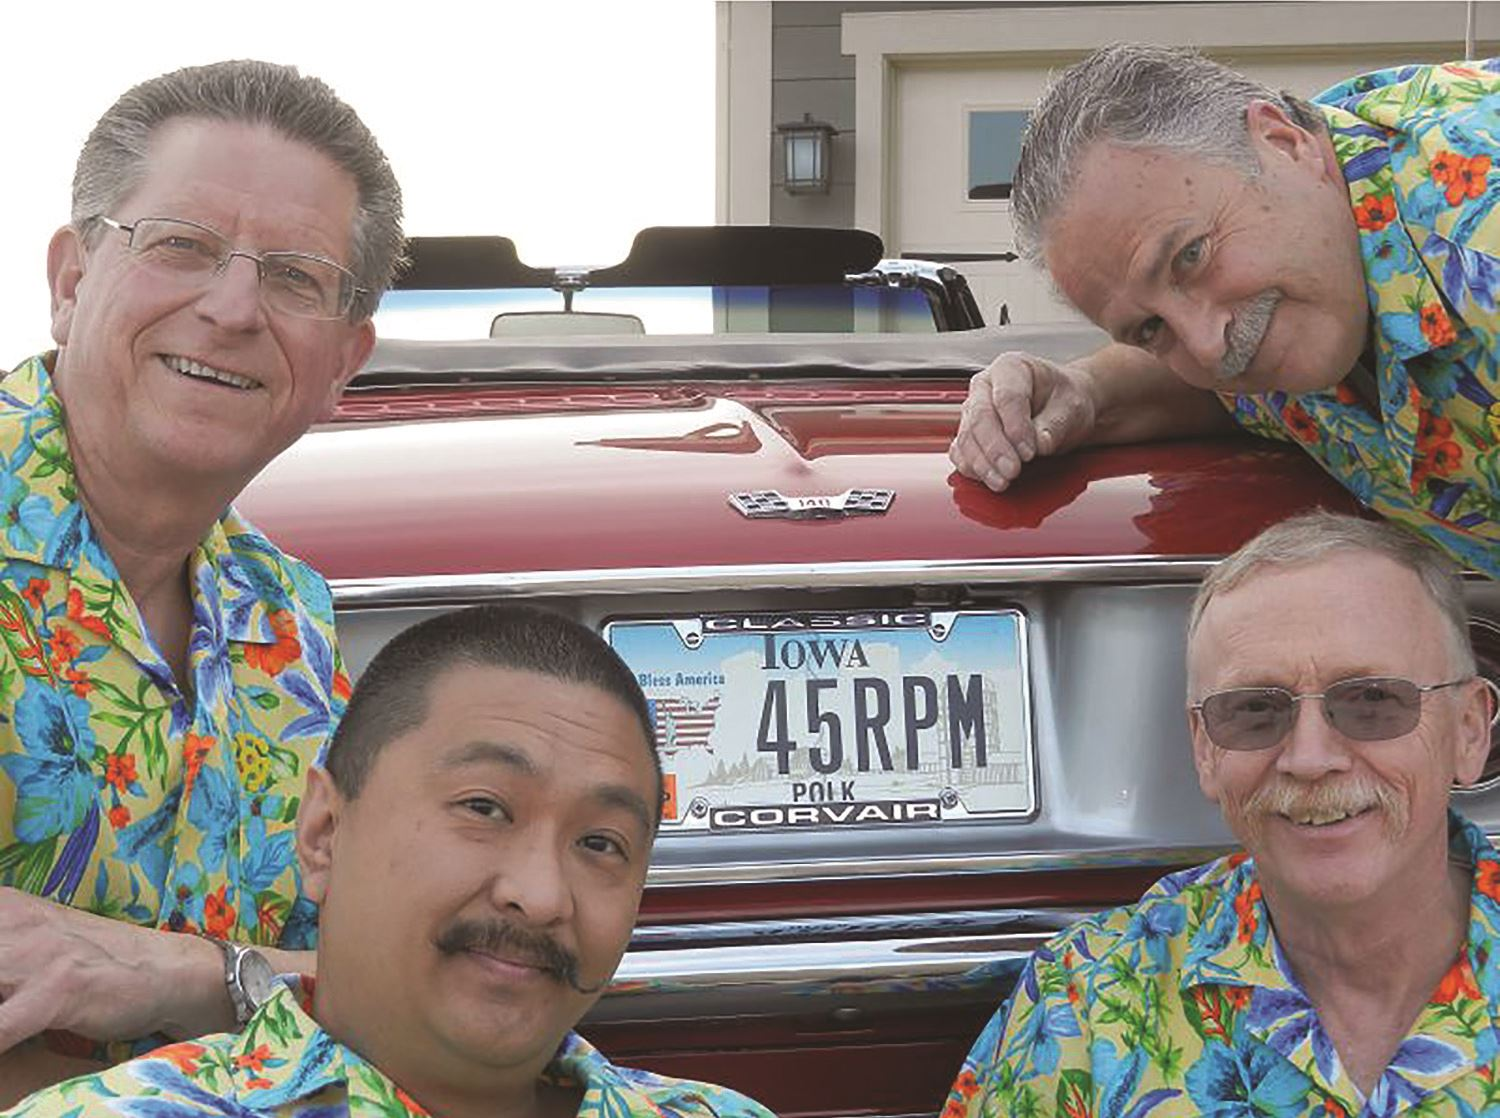 A quartet of similing singers in Hawaiian shirts surround a classic car